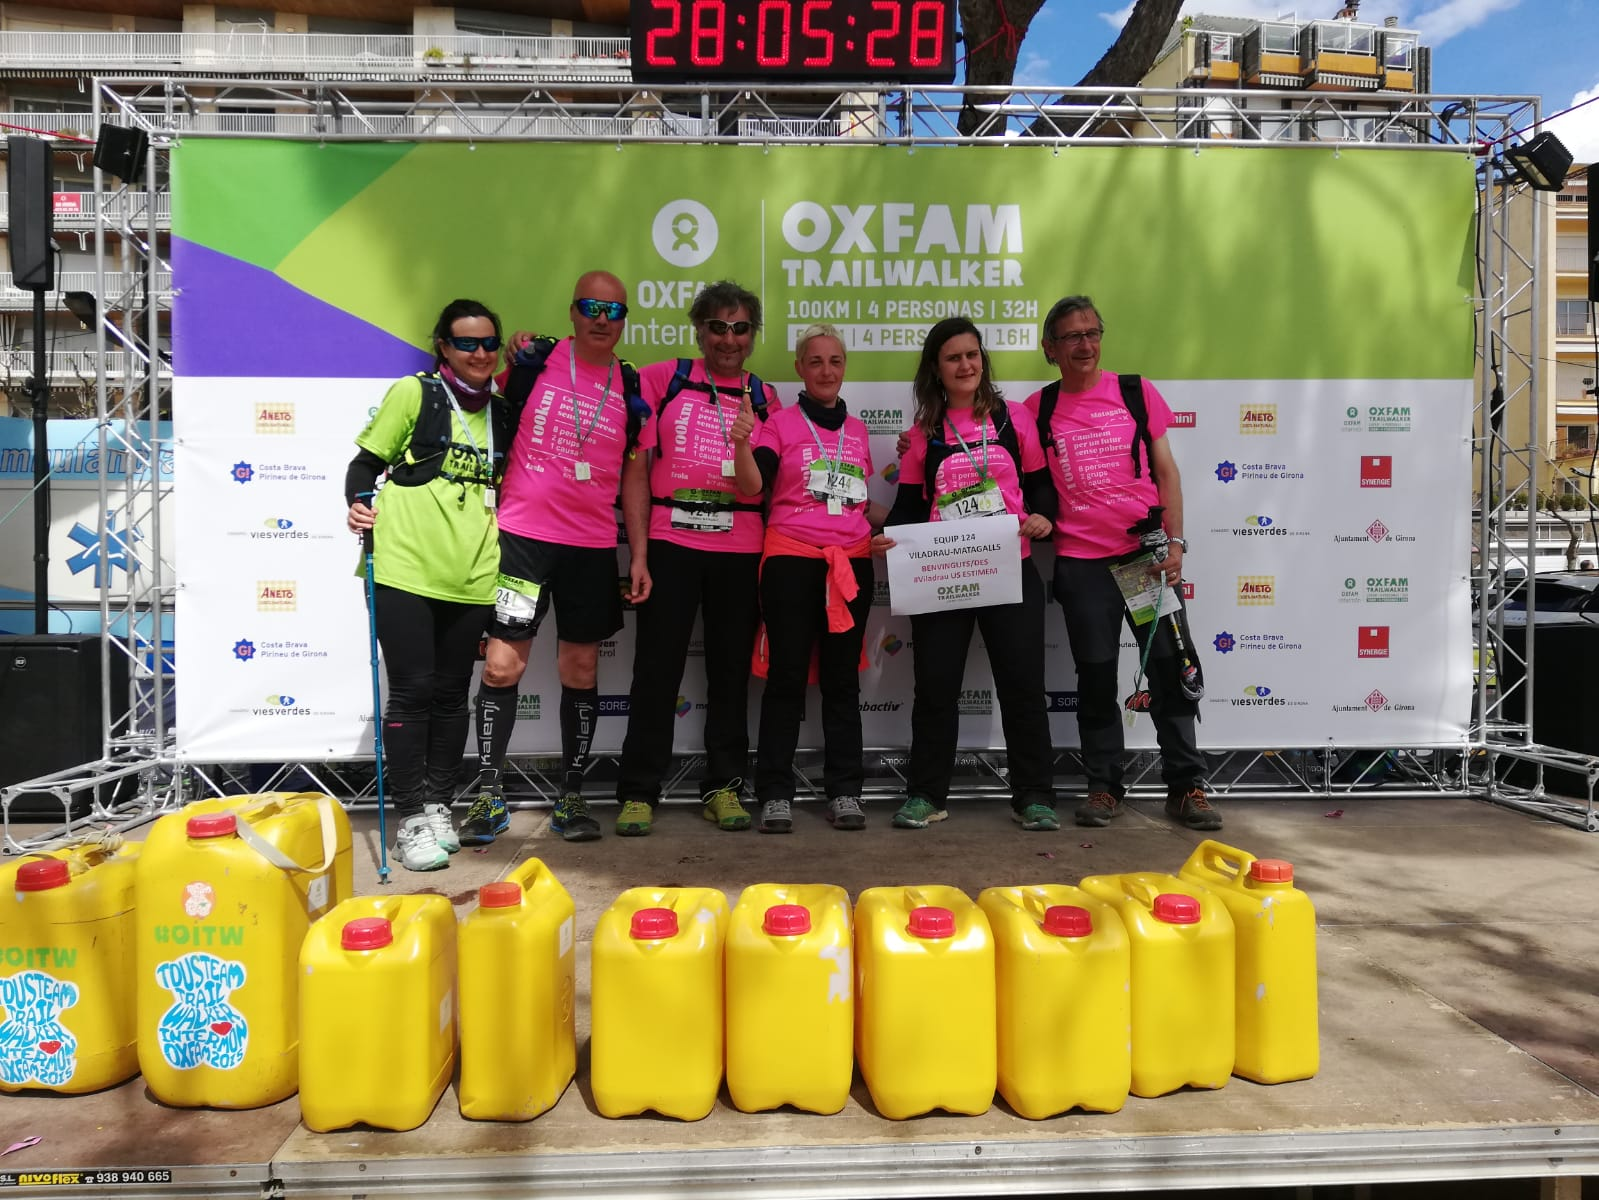 OXFAM Trail Walker 2019